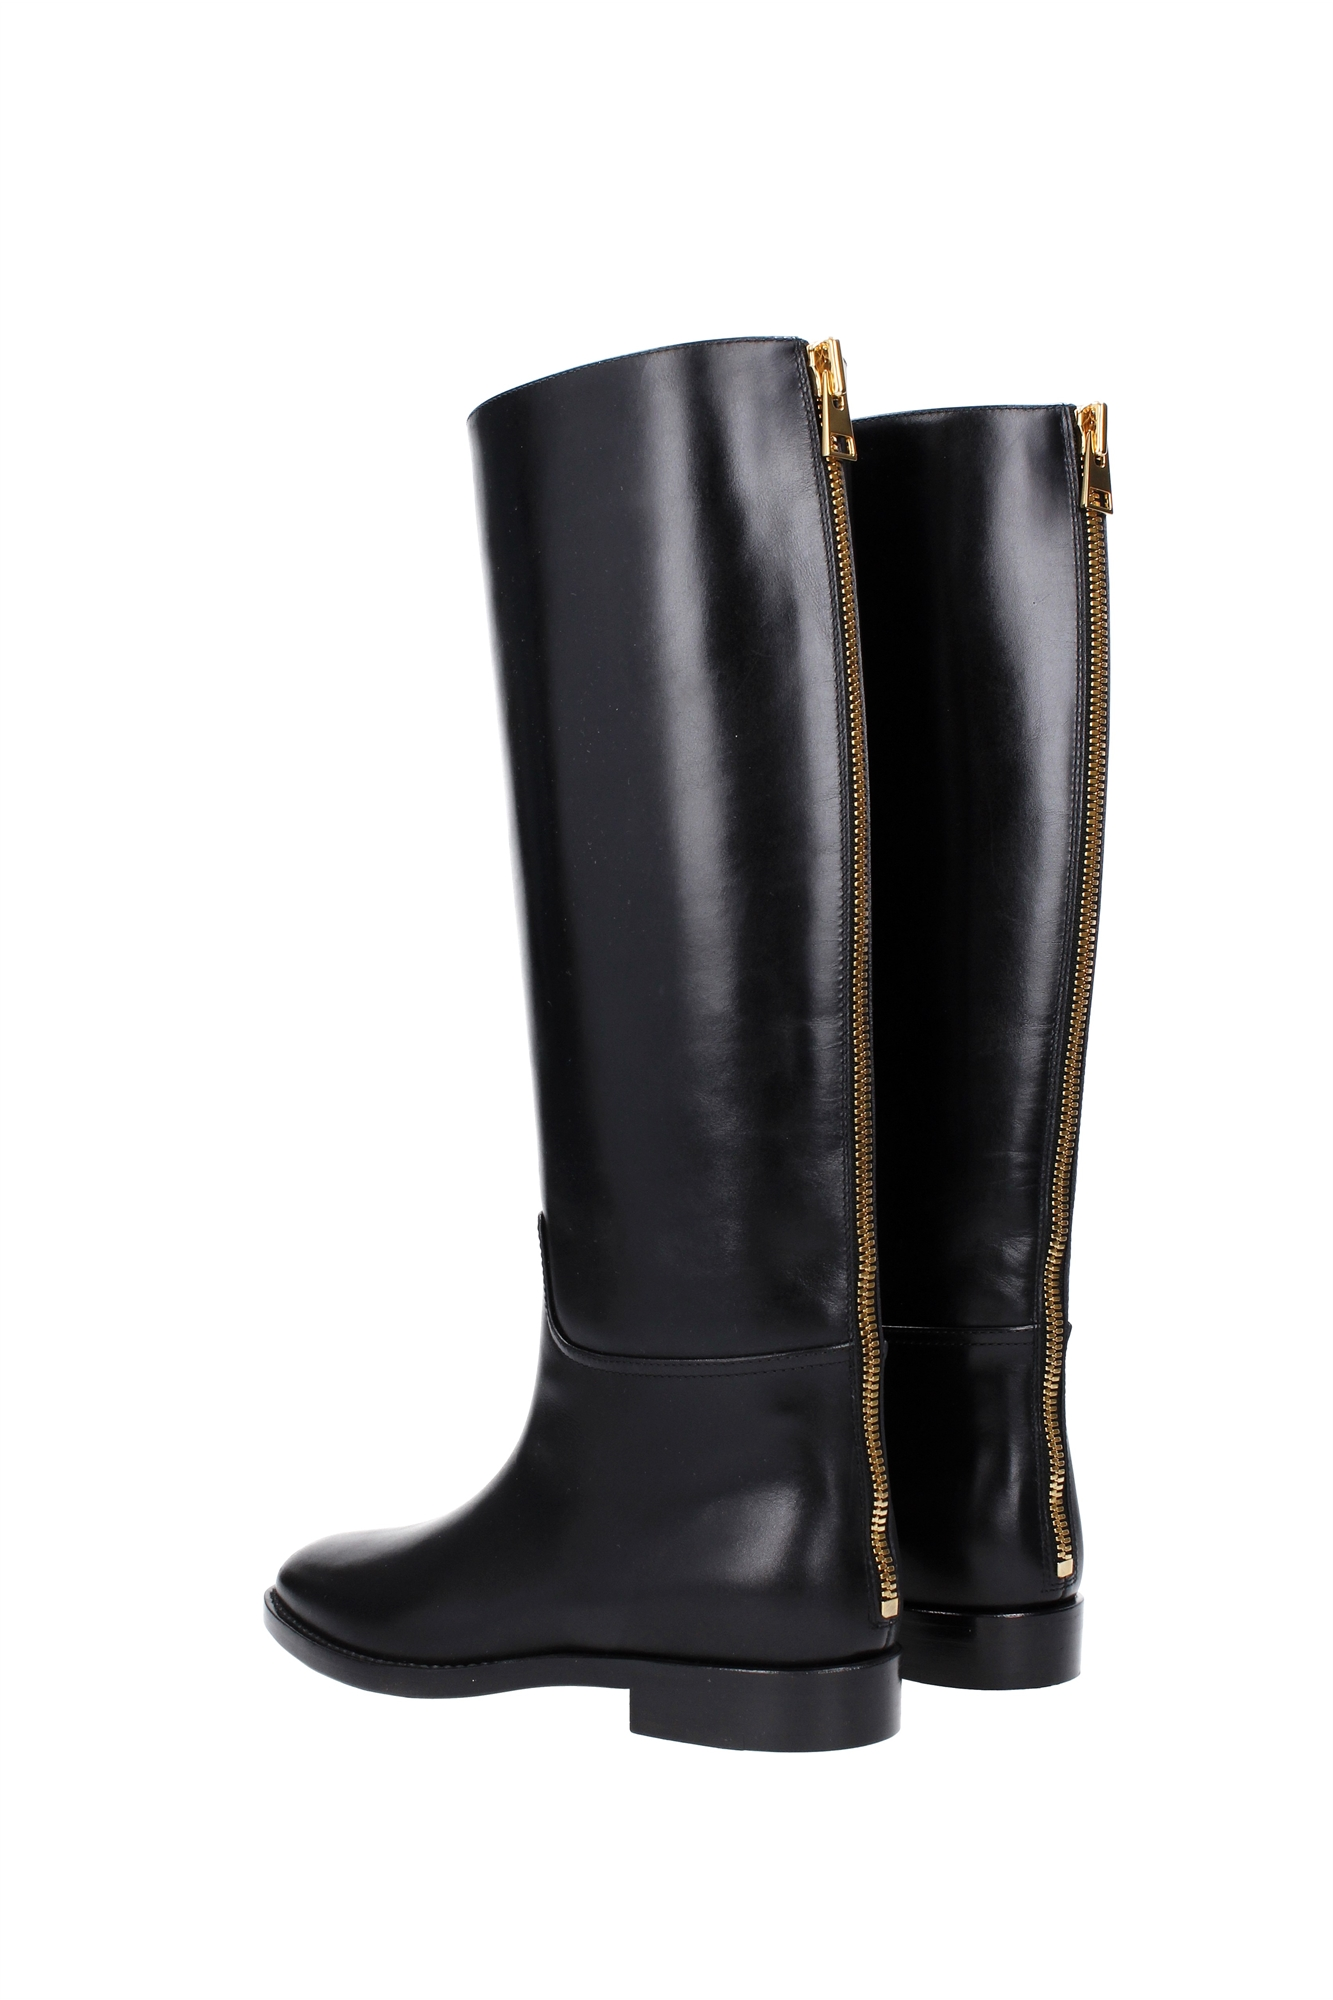 boots tom ford leather black 214w1131tnolblk ebay